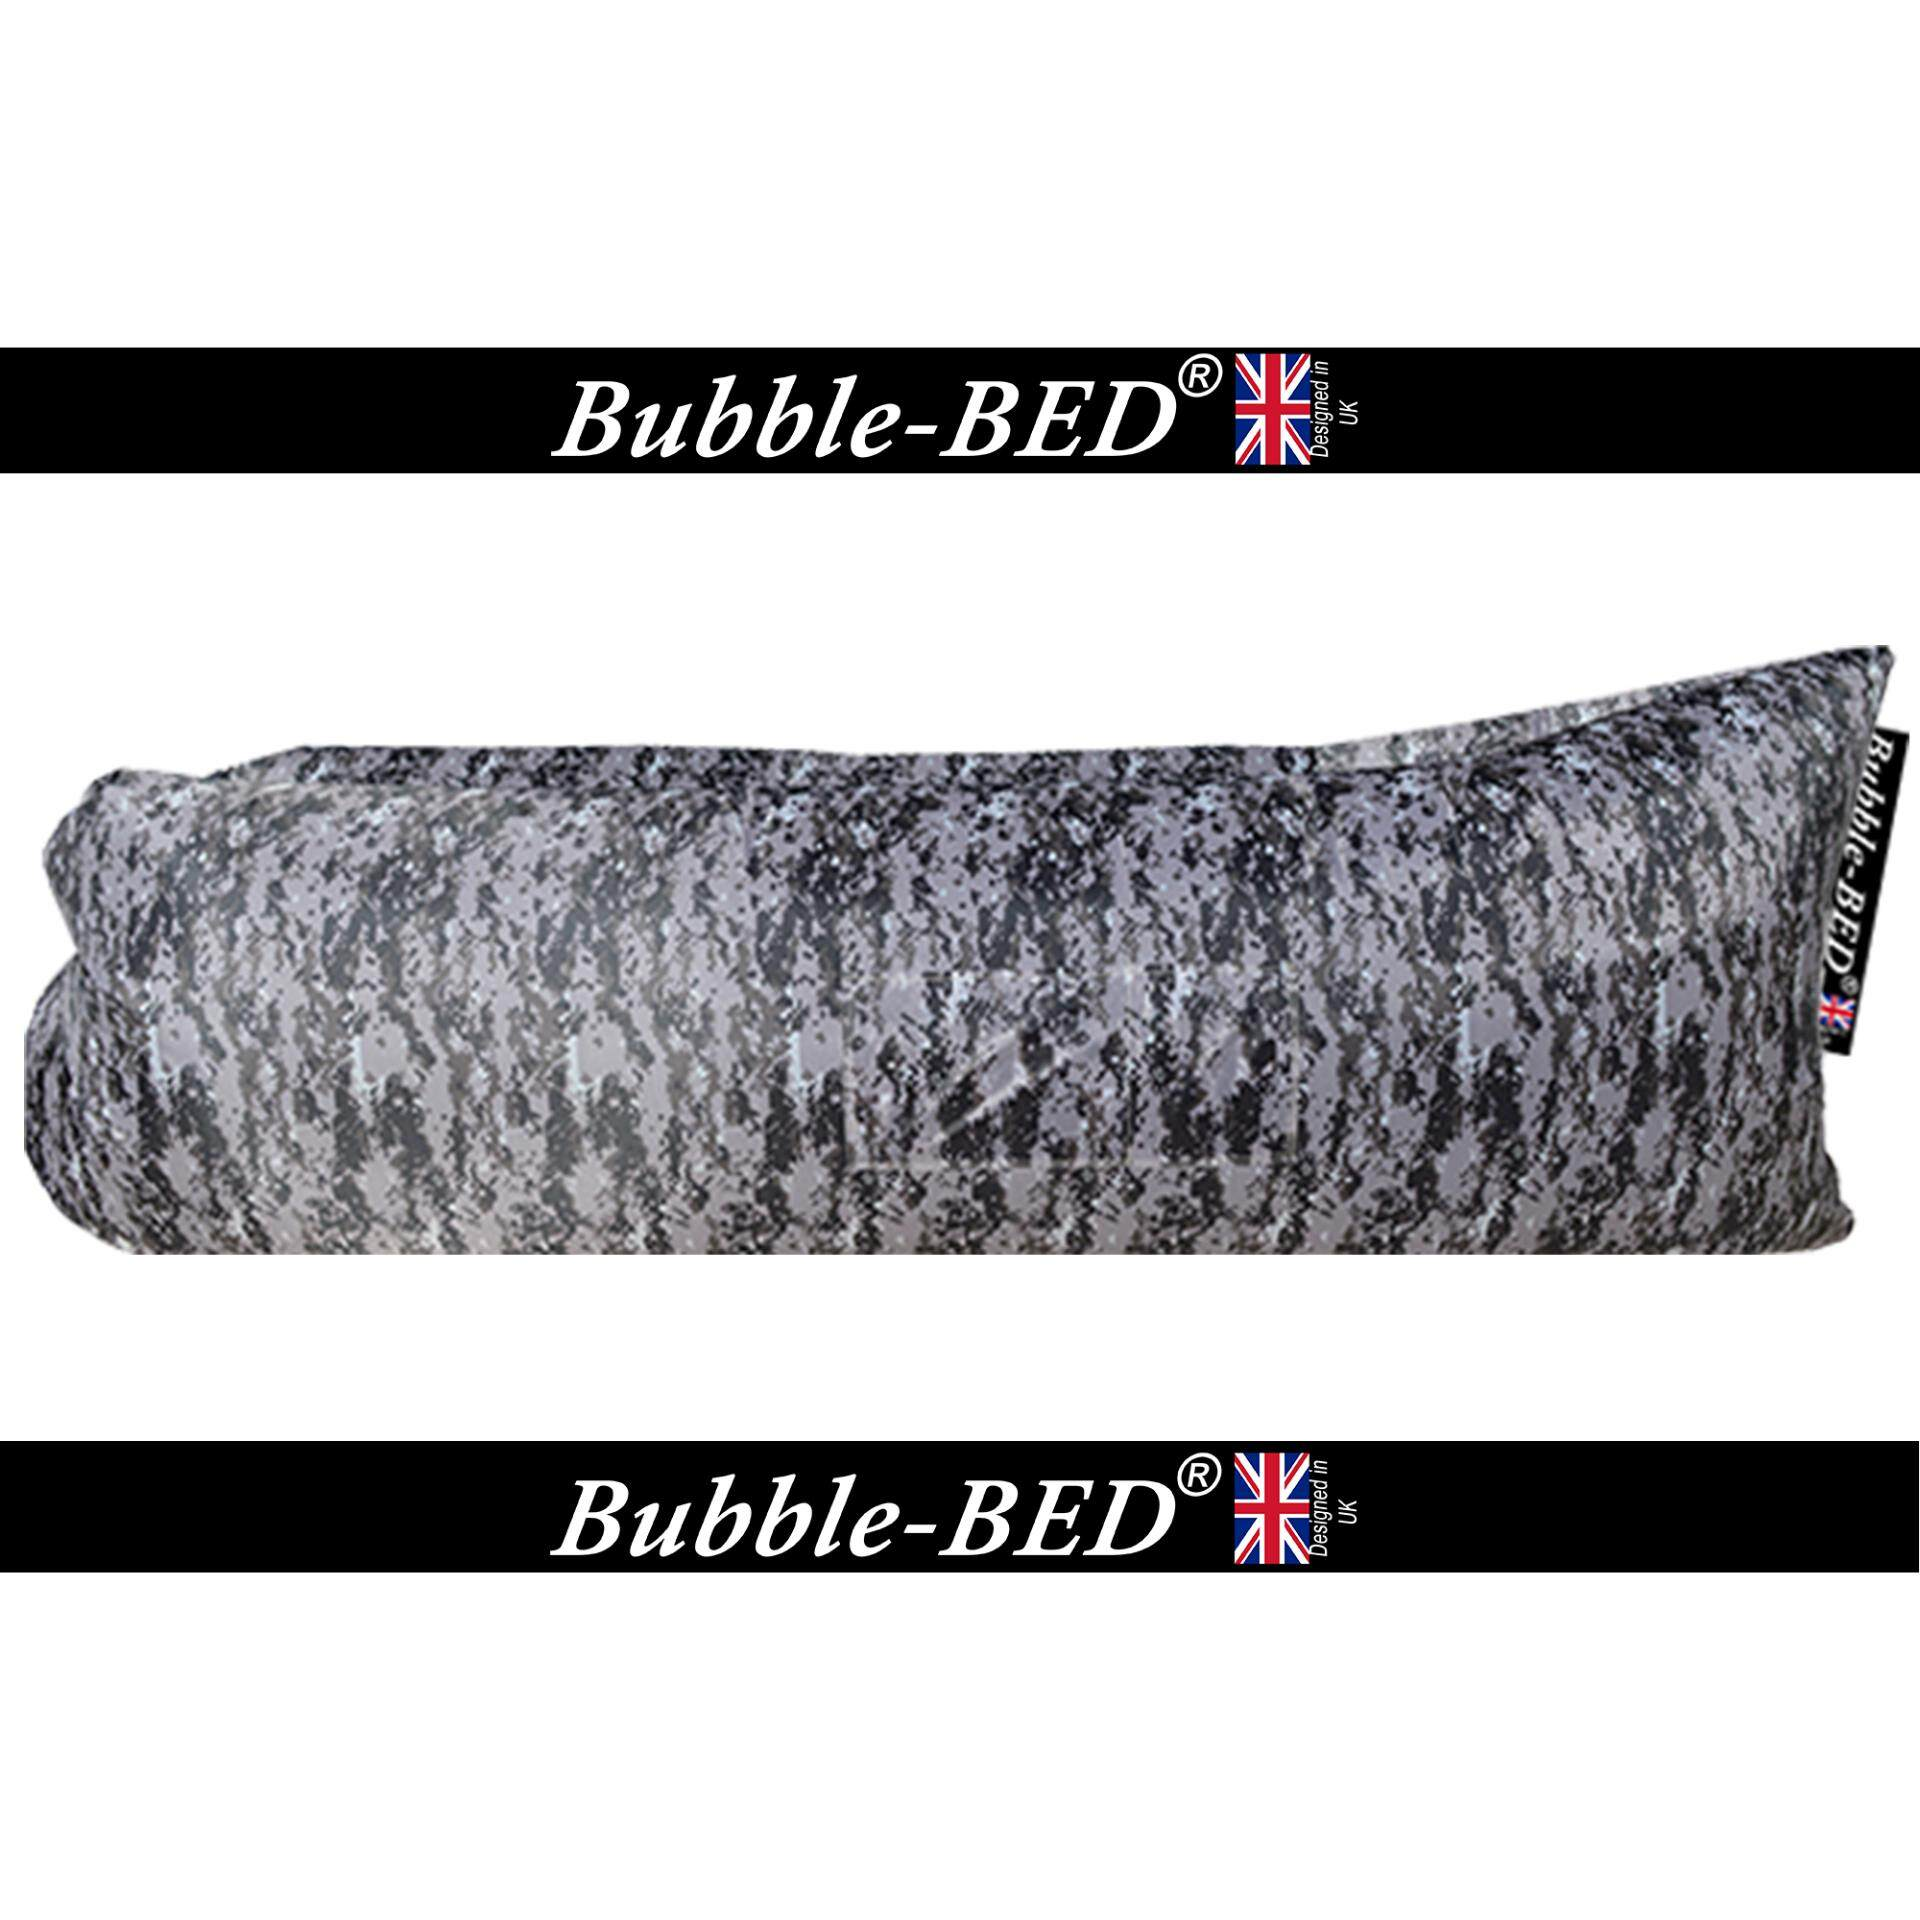 Bubble BED® Original - instant inflatable air sofa bed, lamzac style hangout camping bed, beach bed, air bed mattress, BEST QUALITY GUARANTEED โซฟาลม,ที่นอนลม, เก้าอี้ลม, ยอดนิยม,คุณภาพดี,โซฟาเป่าลม, ที่นอนพกพา, ที่นอนชายหาด,คุณภาพ, ที่นอนเป่าลม